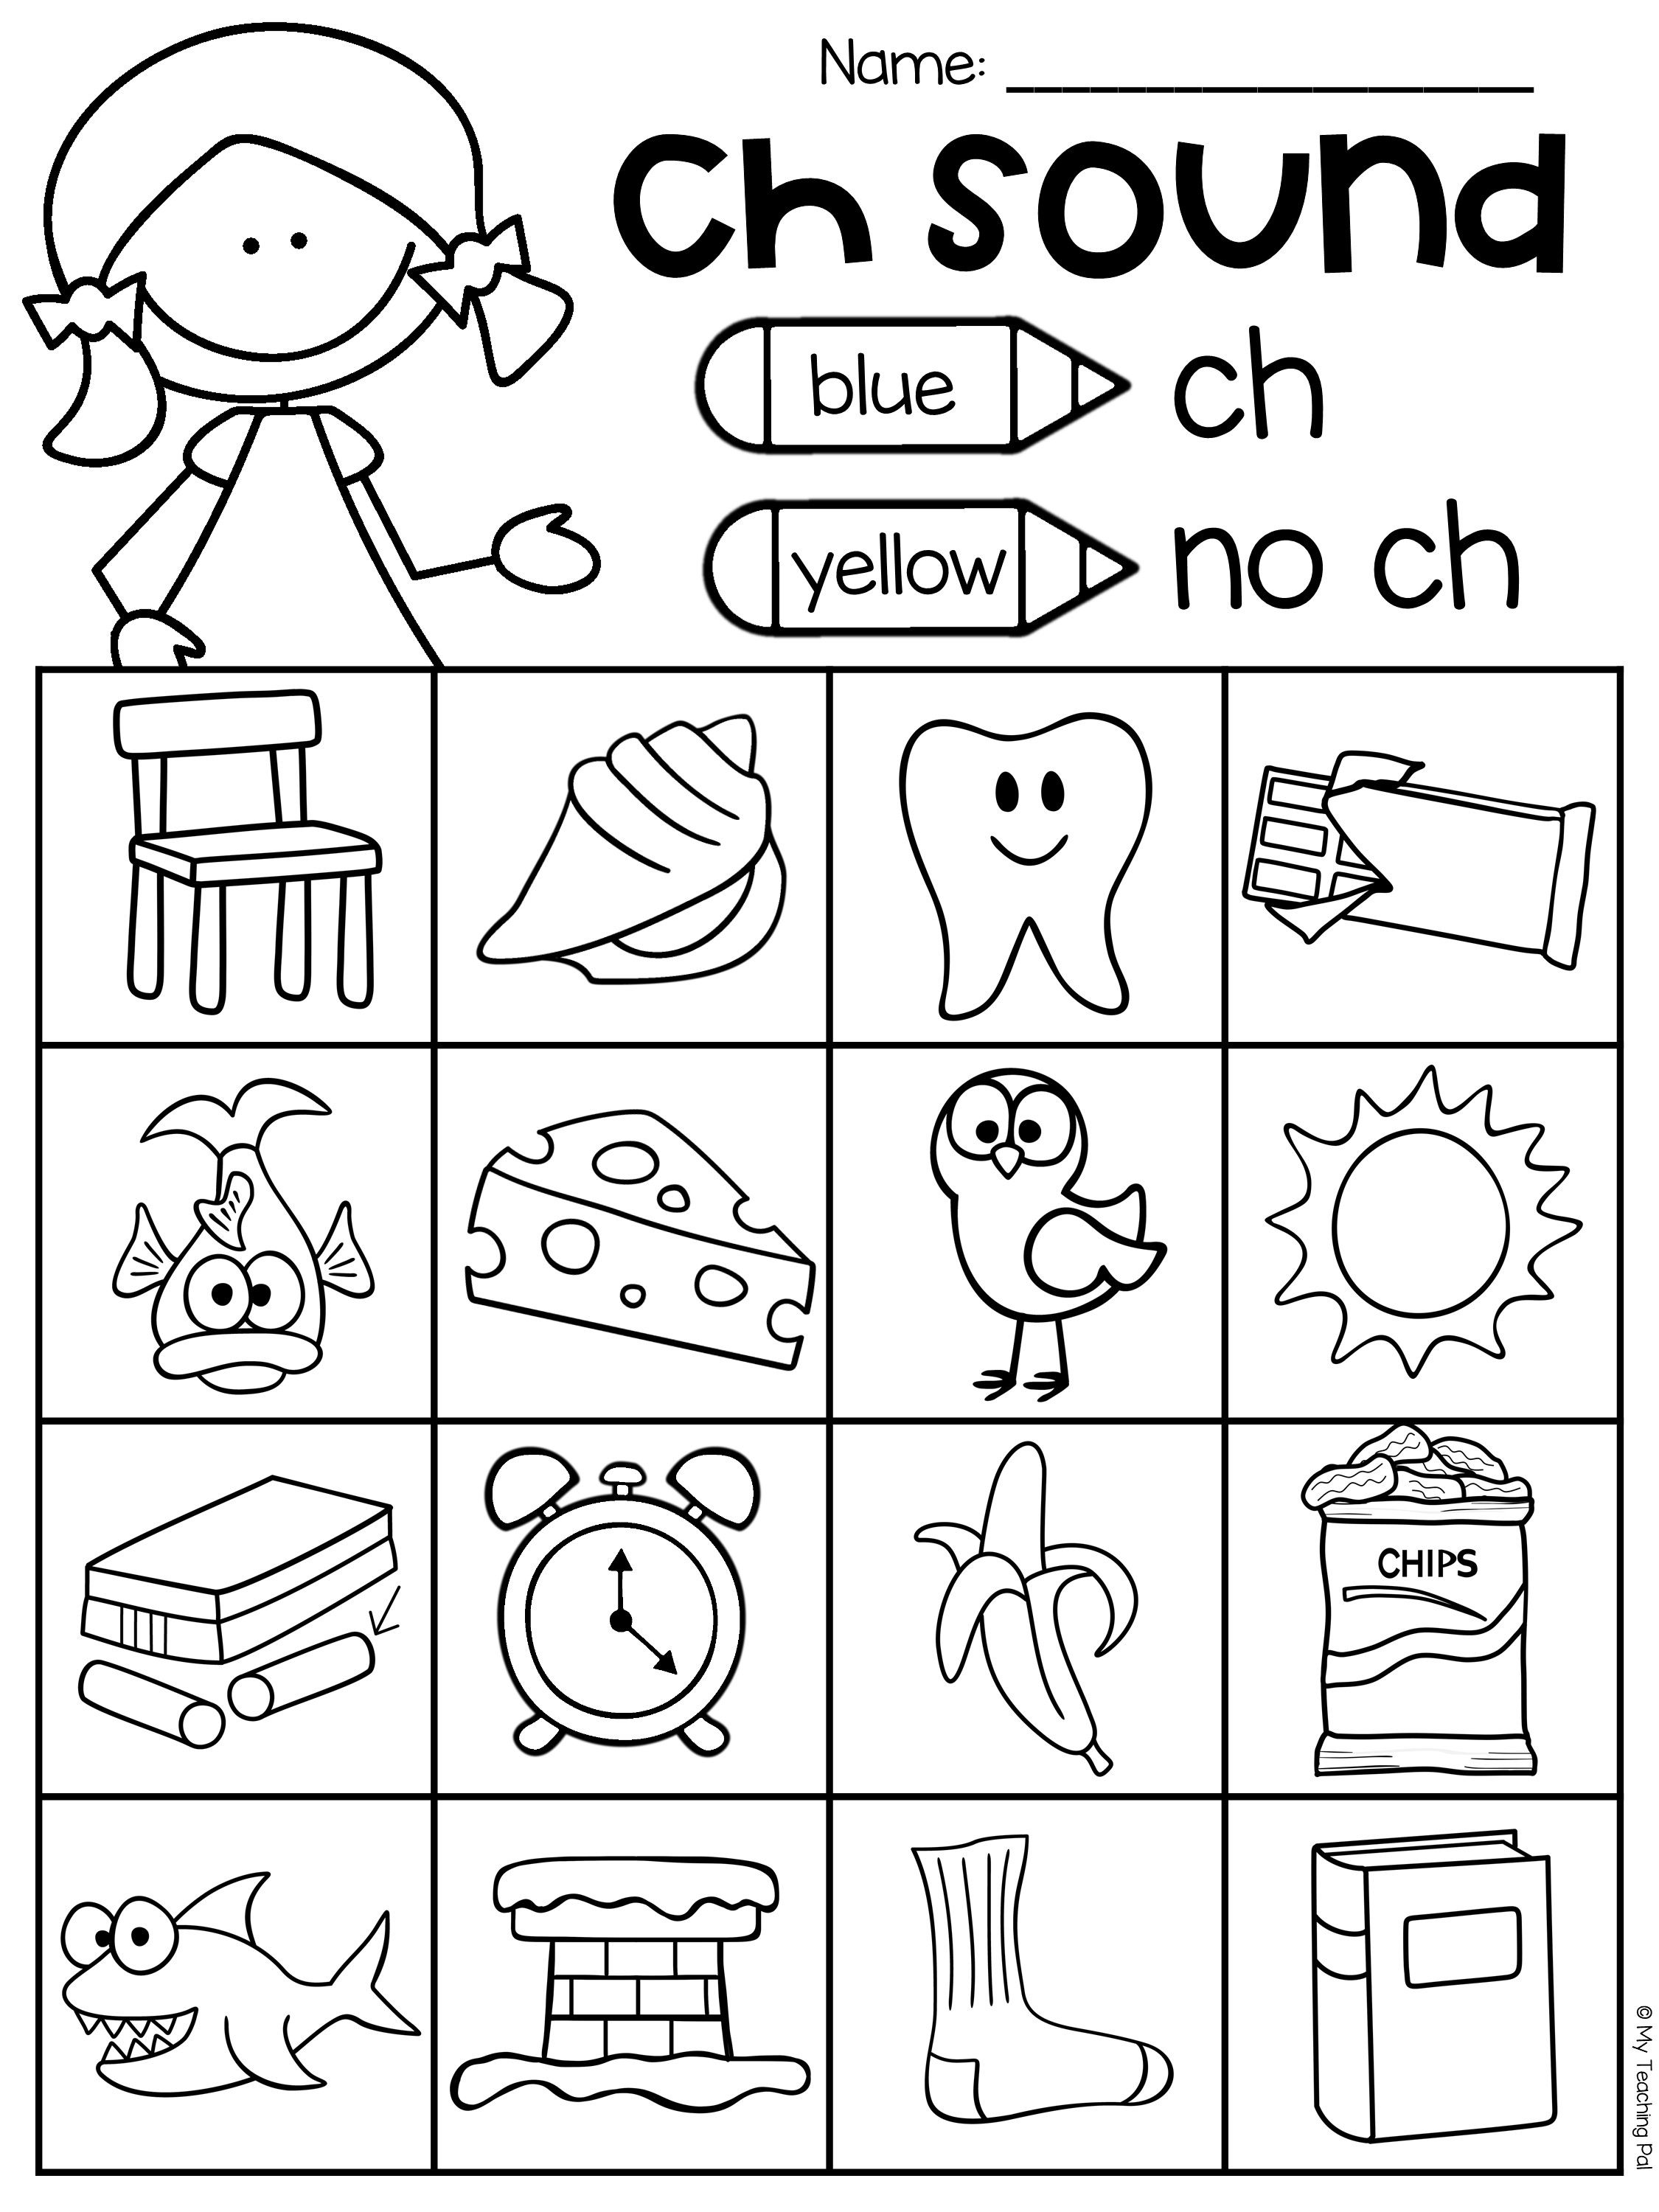 https://dubaikhalifas.com/ch-digraph-worksheets-th-digraph-worksheets-read-color-write/ [ 91 x 3000 Pixel ]